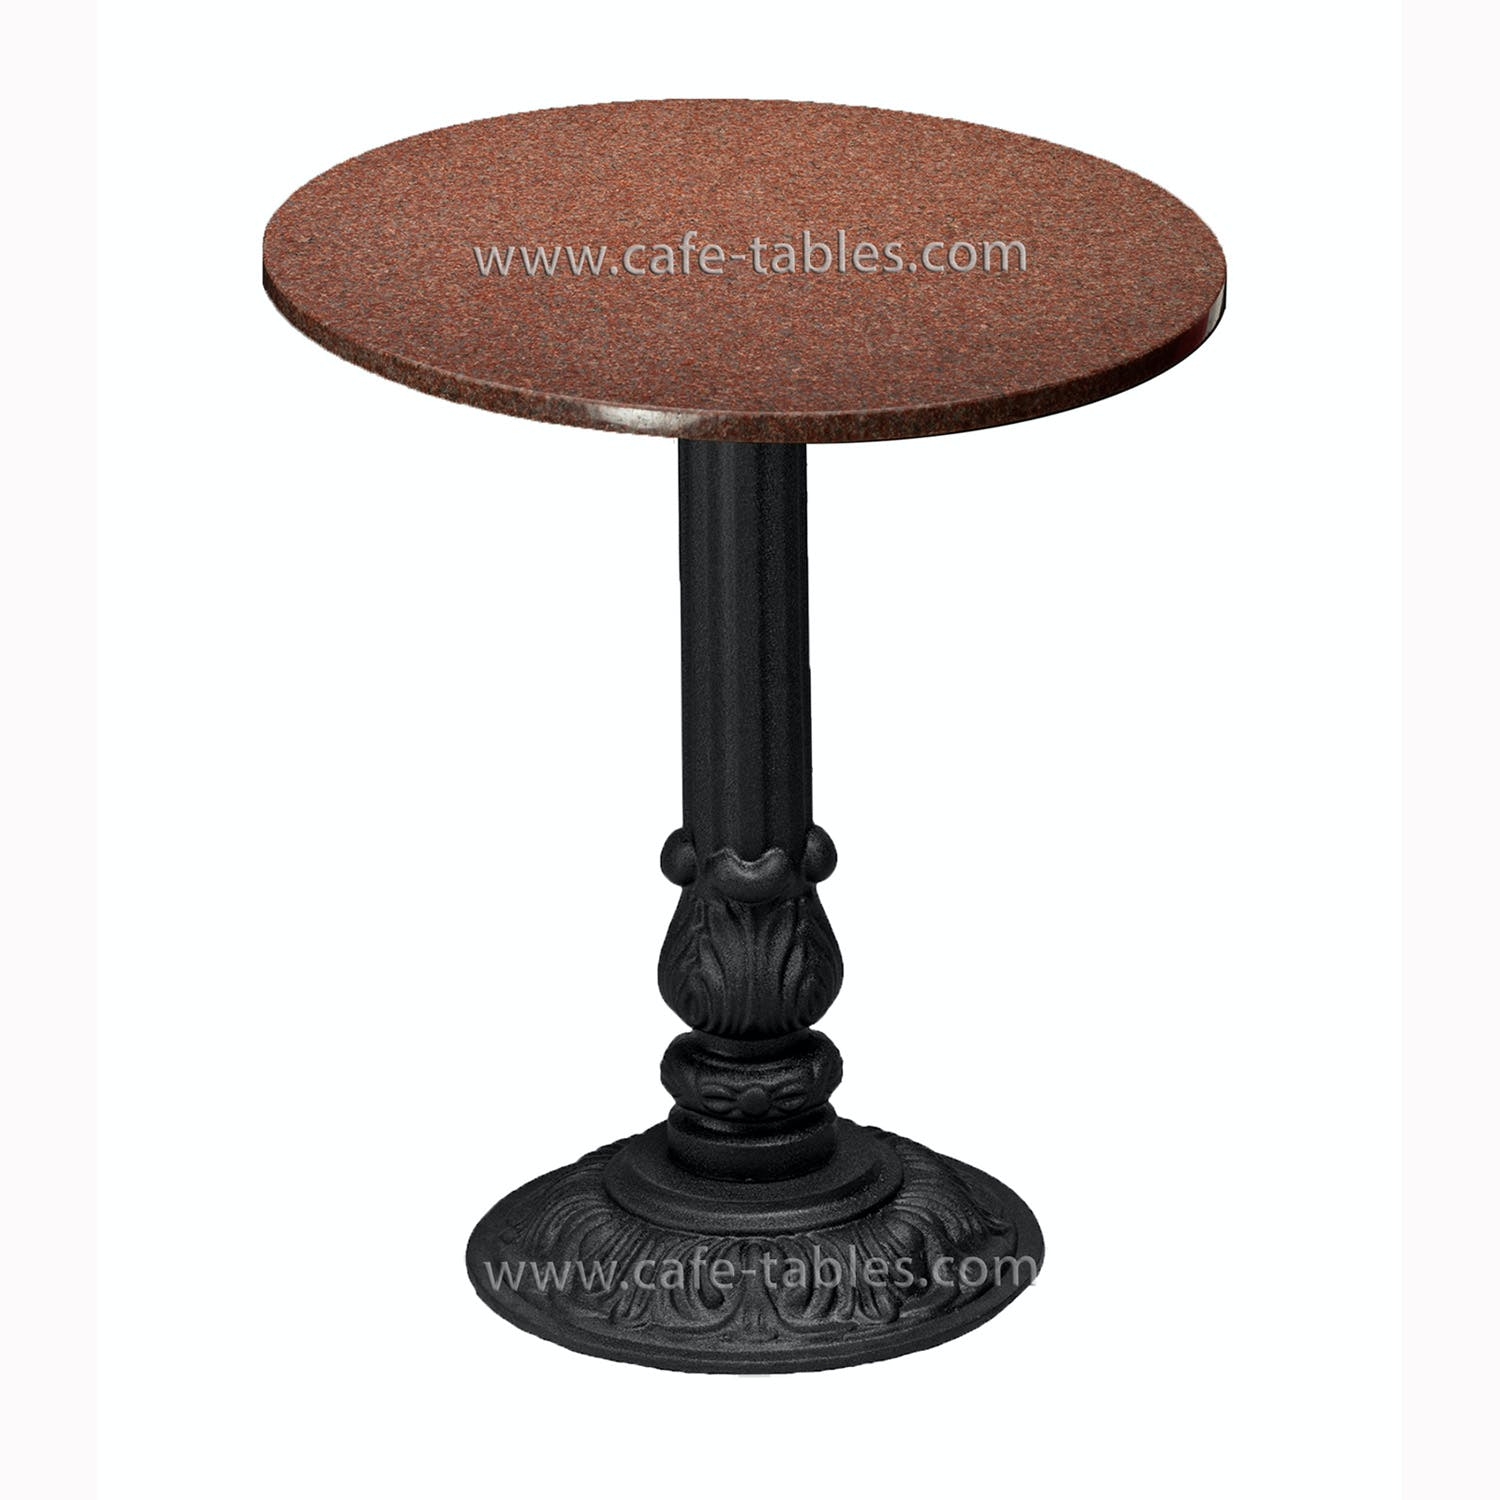 "30"" New Imperial Red Granite top with Pieta base Restaurant table sold by Cafe Tables"